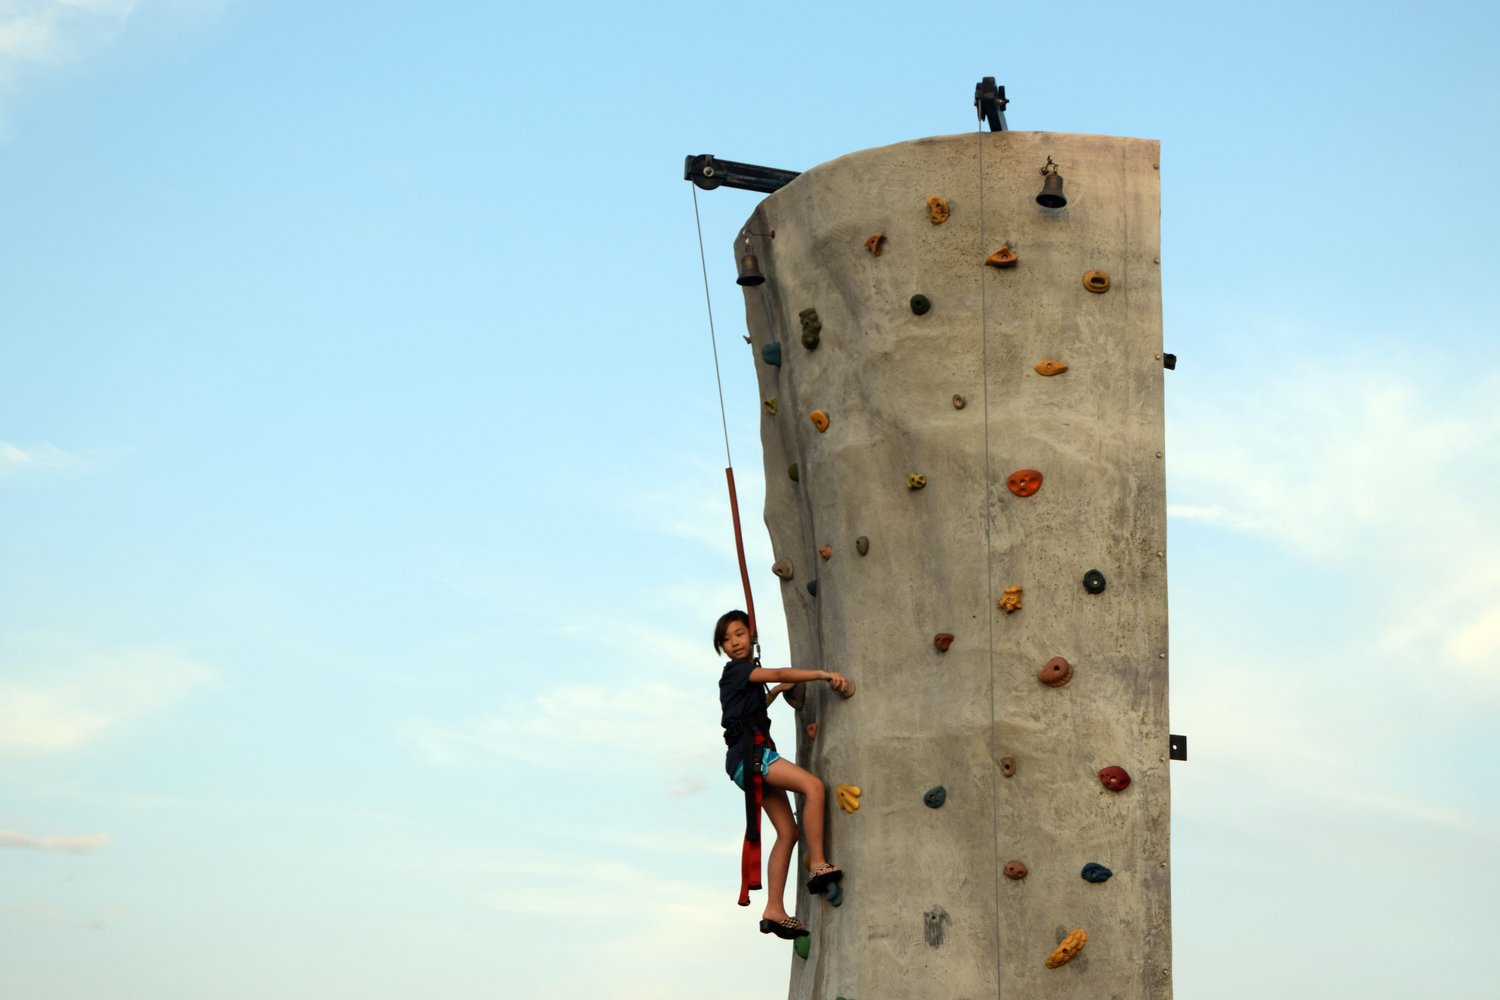 Clara Chung, 10, almost makes it to the top of the rock wall.